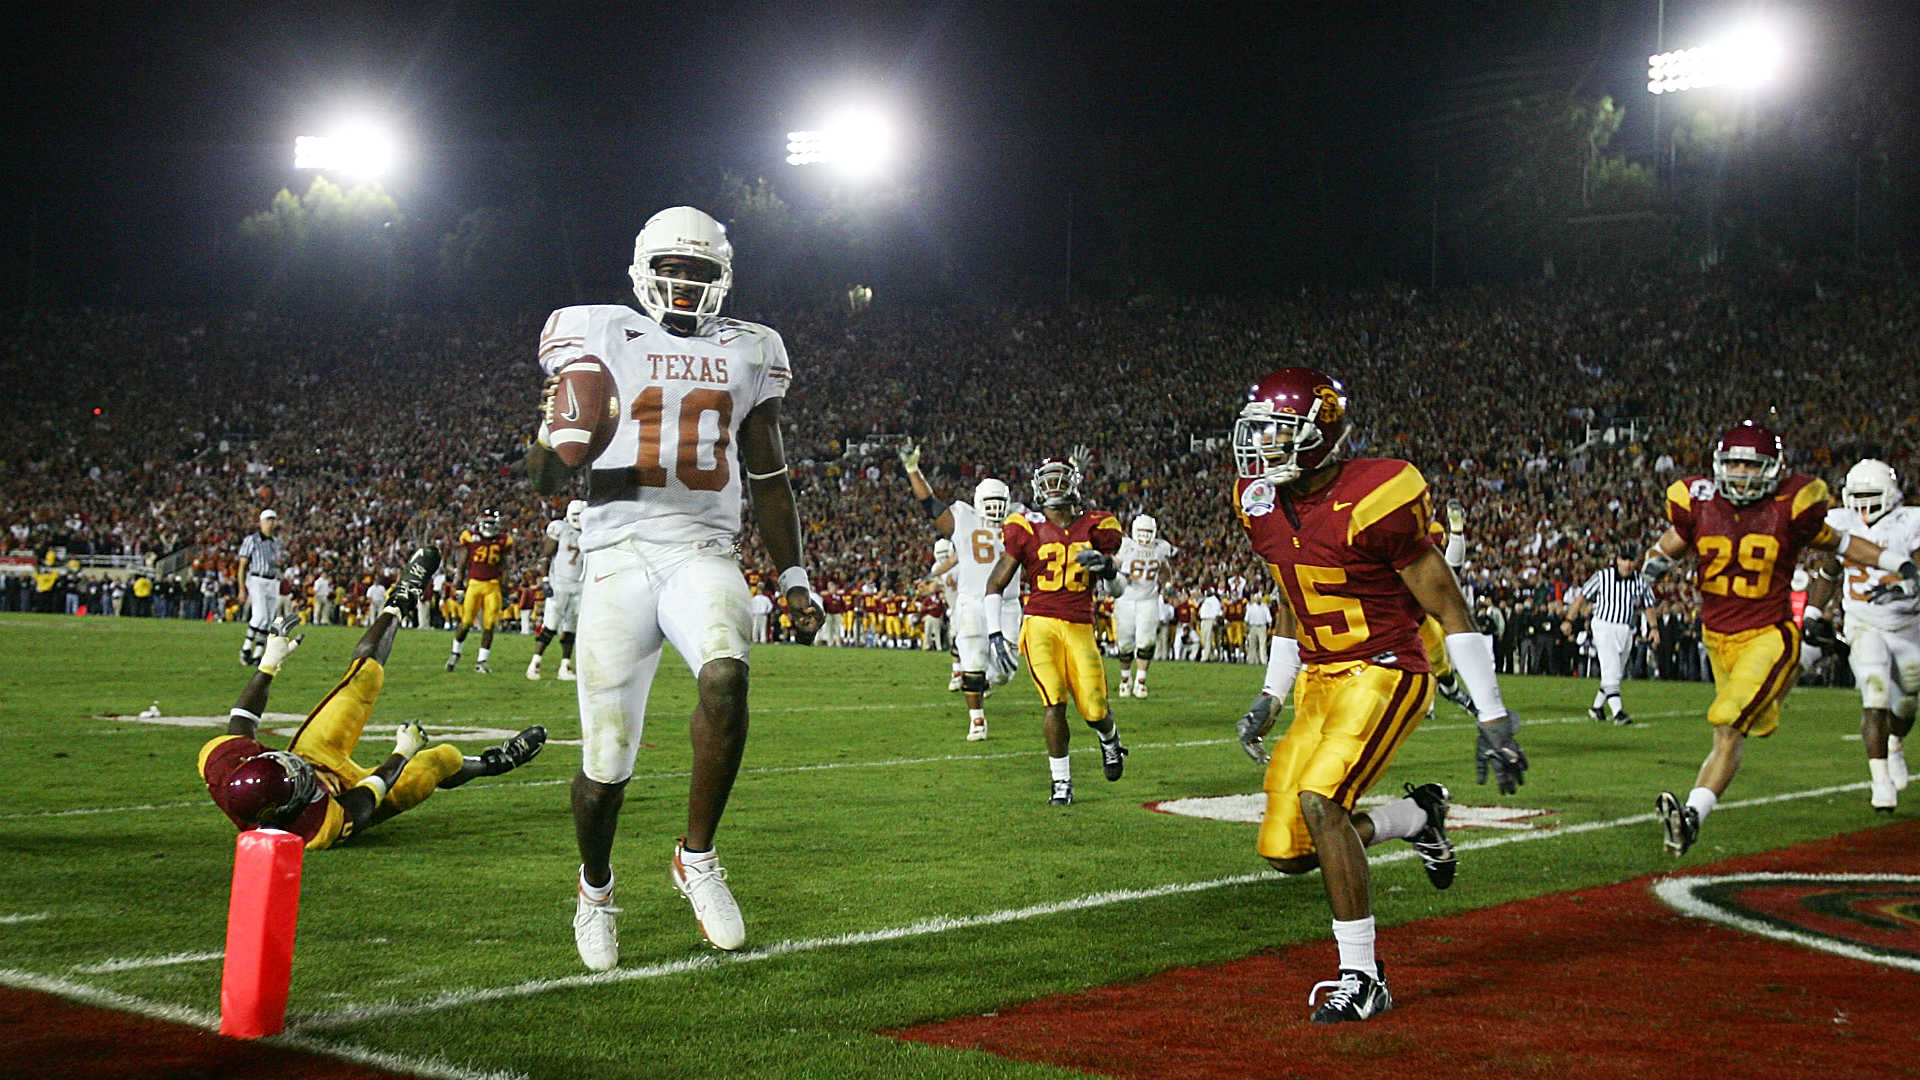 USC-Texas rematch brings back Rose Bowl memories for Trojans: 'It still hurts'